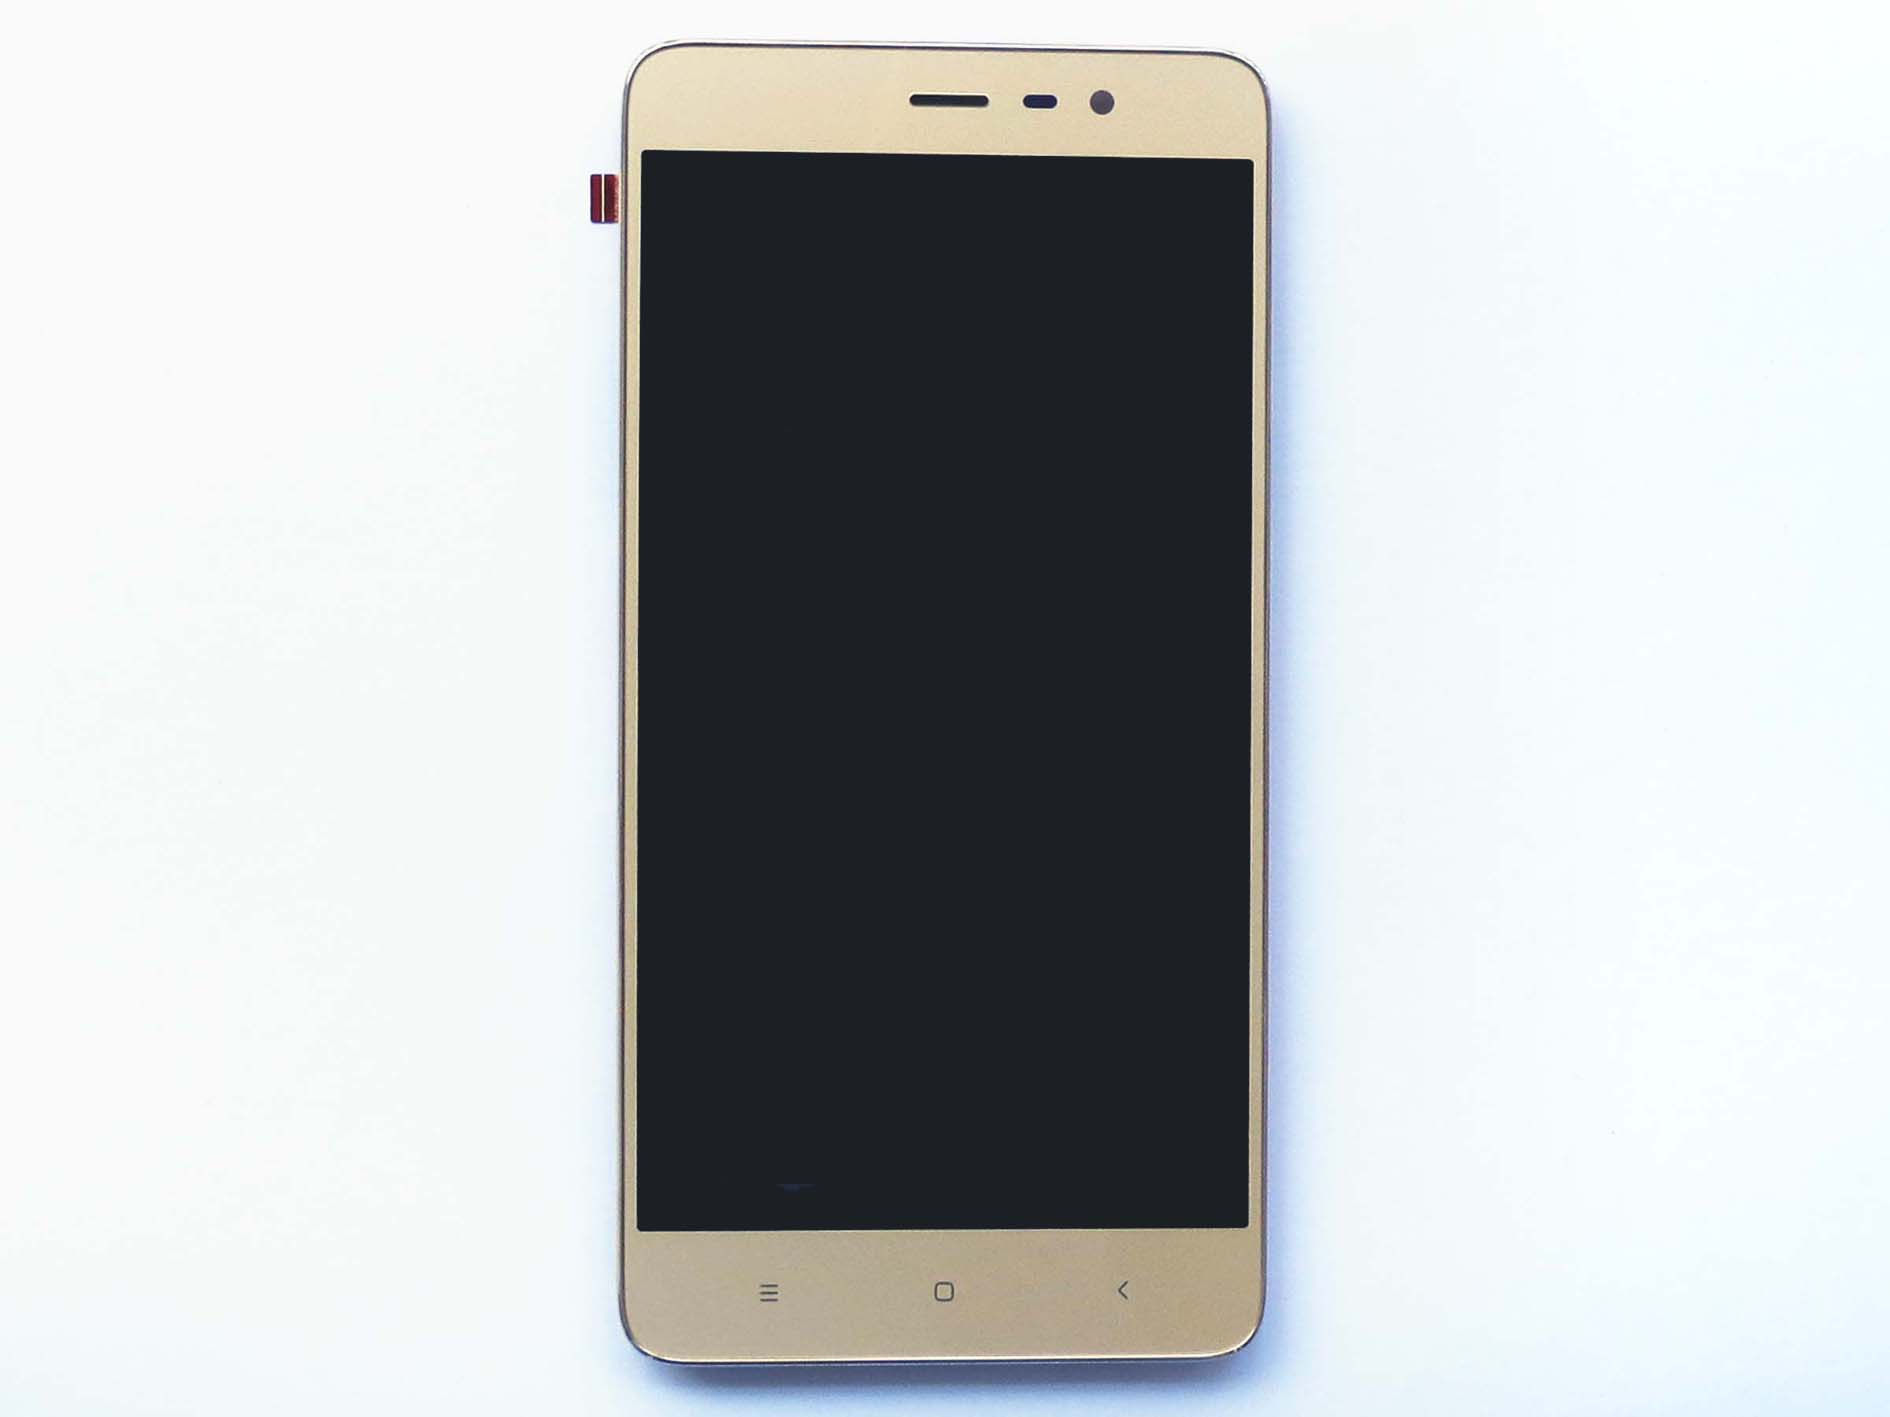 Original Complete screen with housing for Redmi note 3 pro special edition- Gold